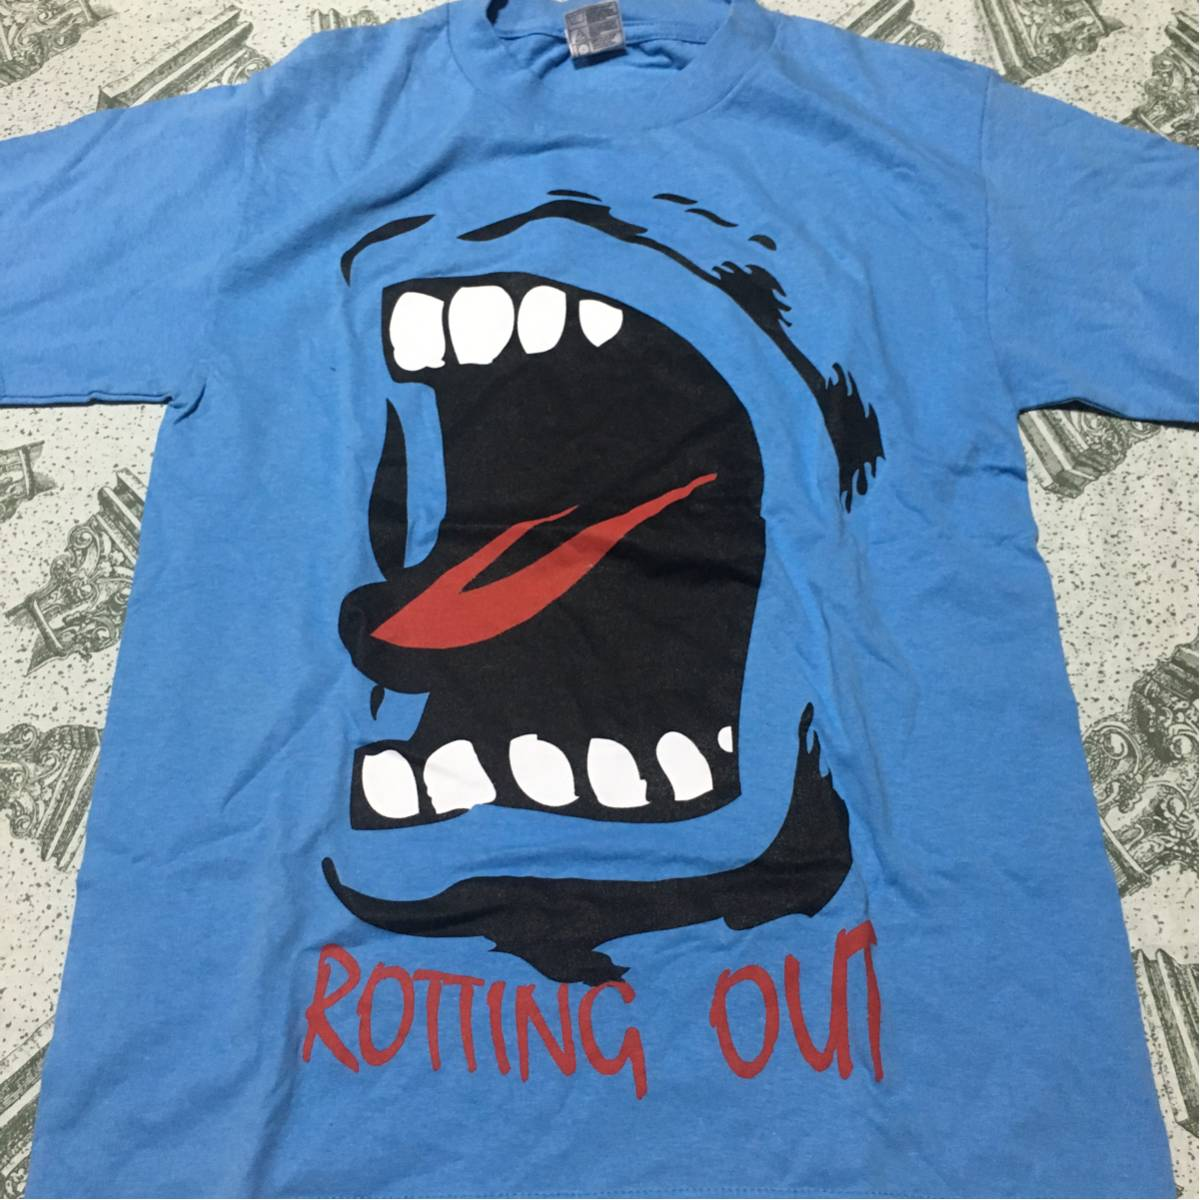 ROTTING OUT Tシャツ nyhc lockin out thrasher 21